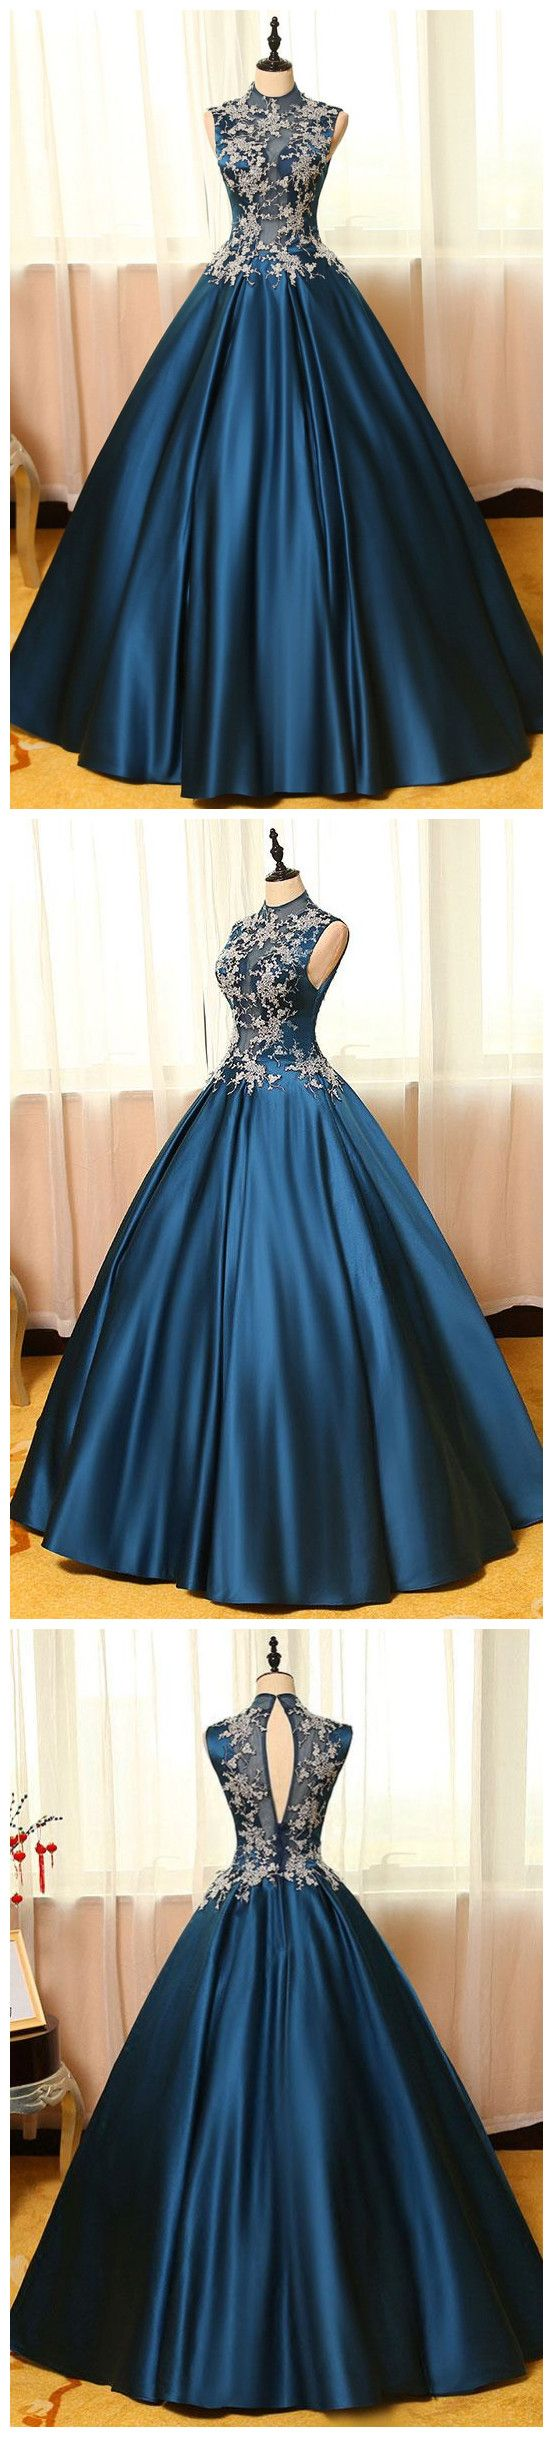 2017 High Neck Sleeveless Appliques Long Prom Dresses, Floor Length Blue Prom Dresses ASD26824 #highneck #alinedress #blue #appliques #princess #party #partytime #fashion